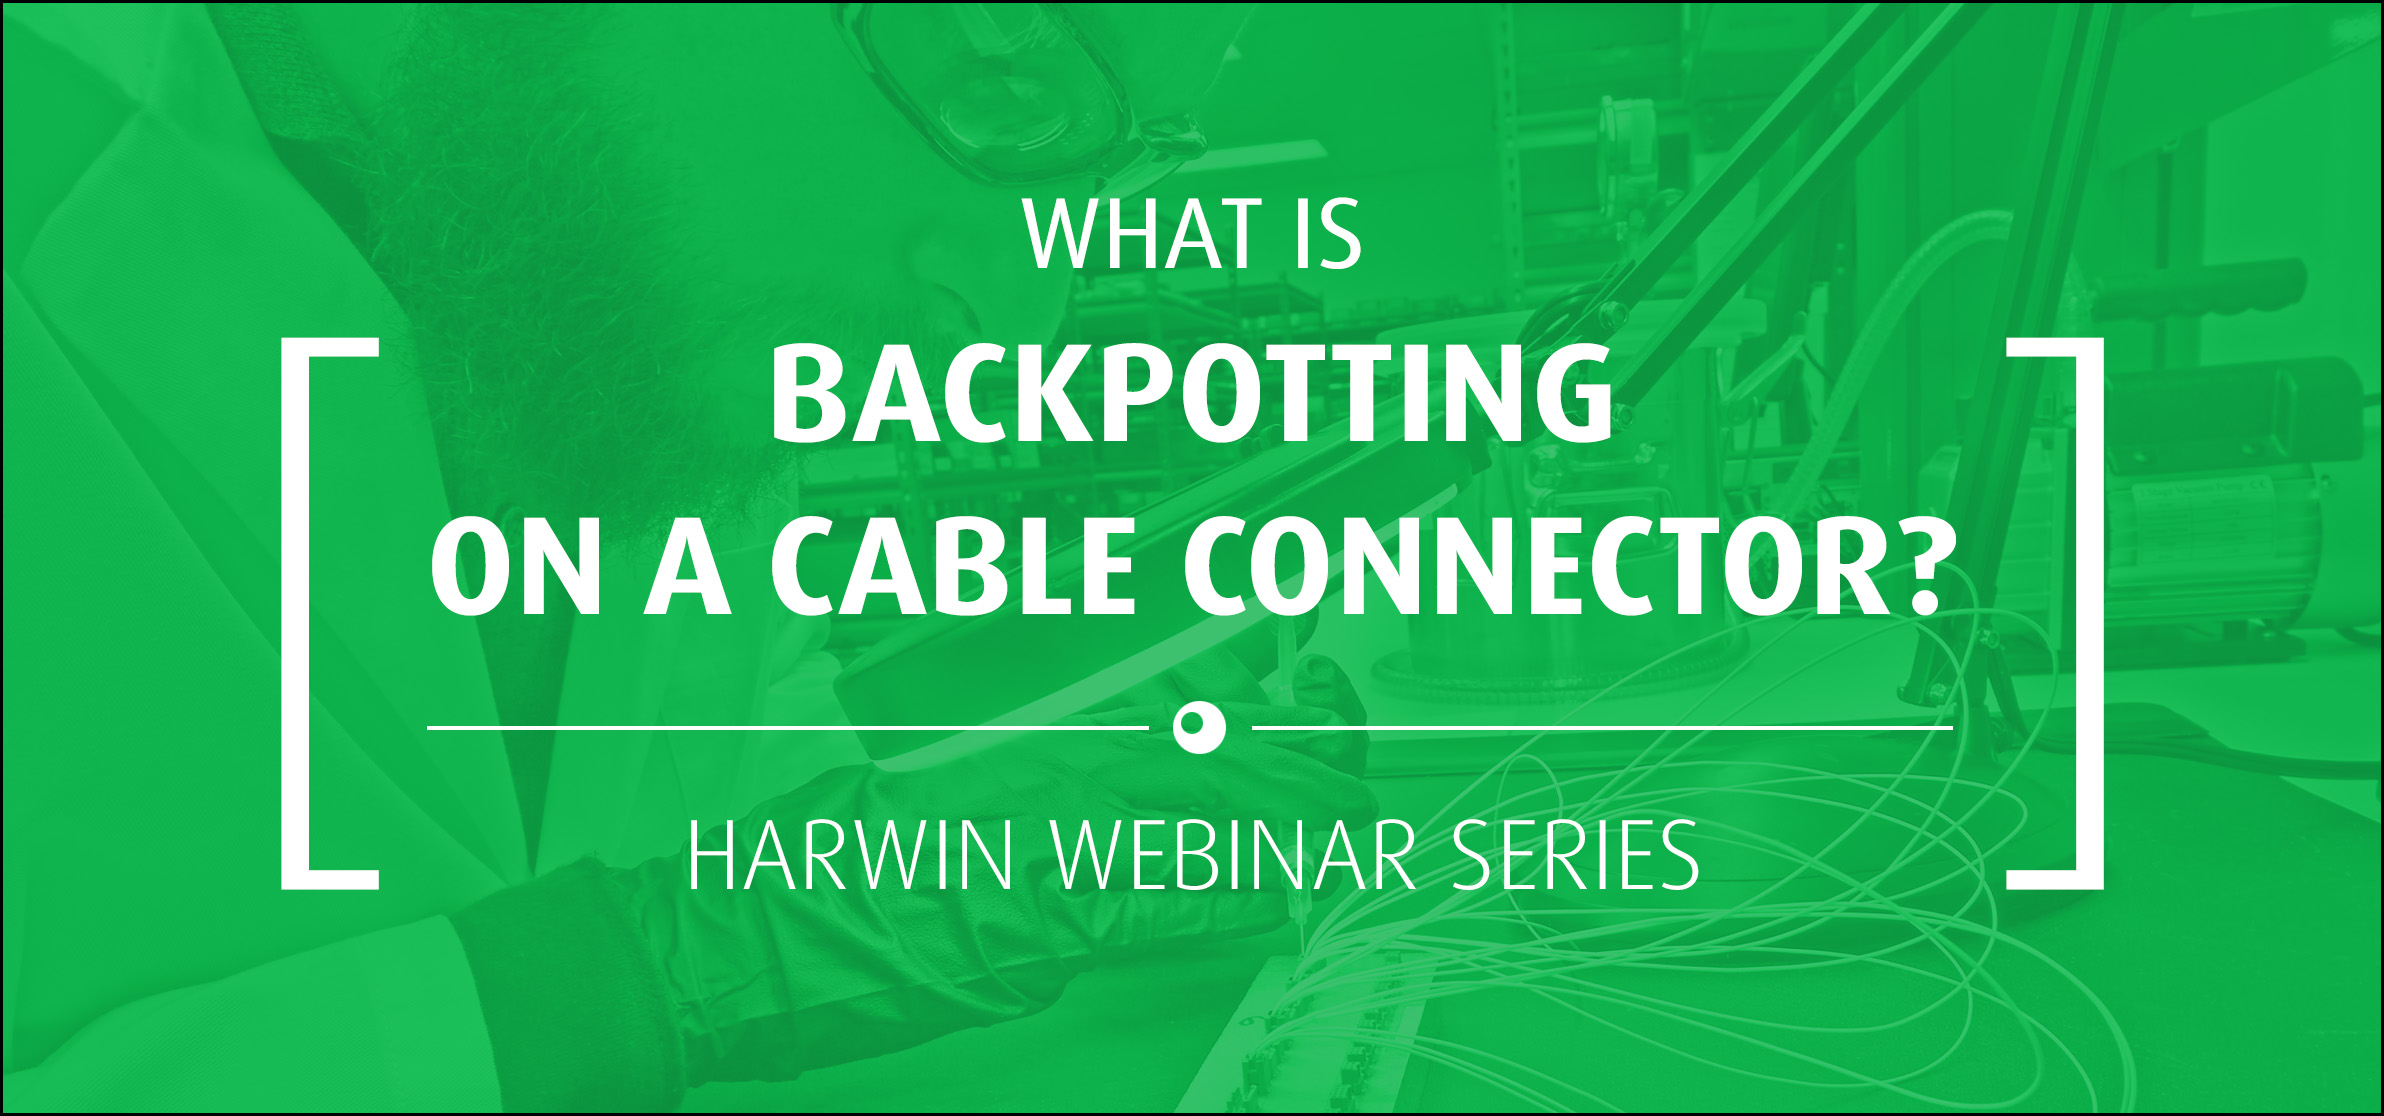 Wista video for What is Backpotting on a Cable Connector?